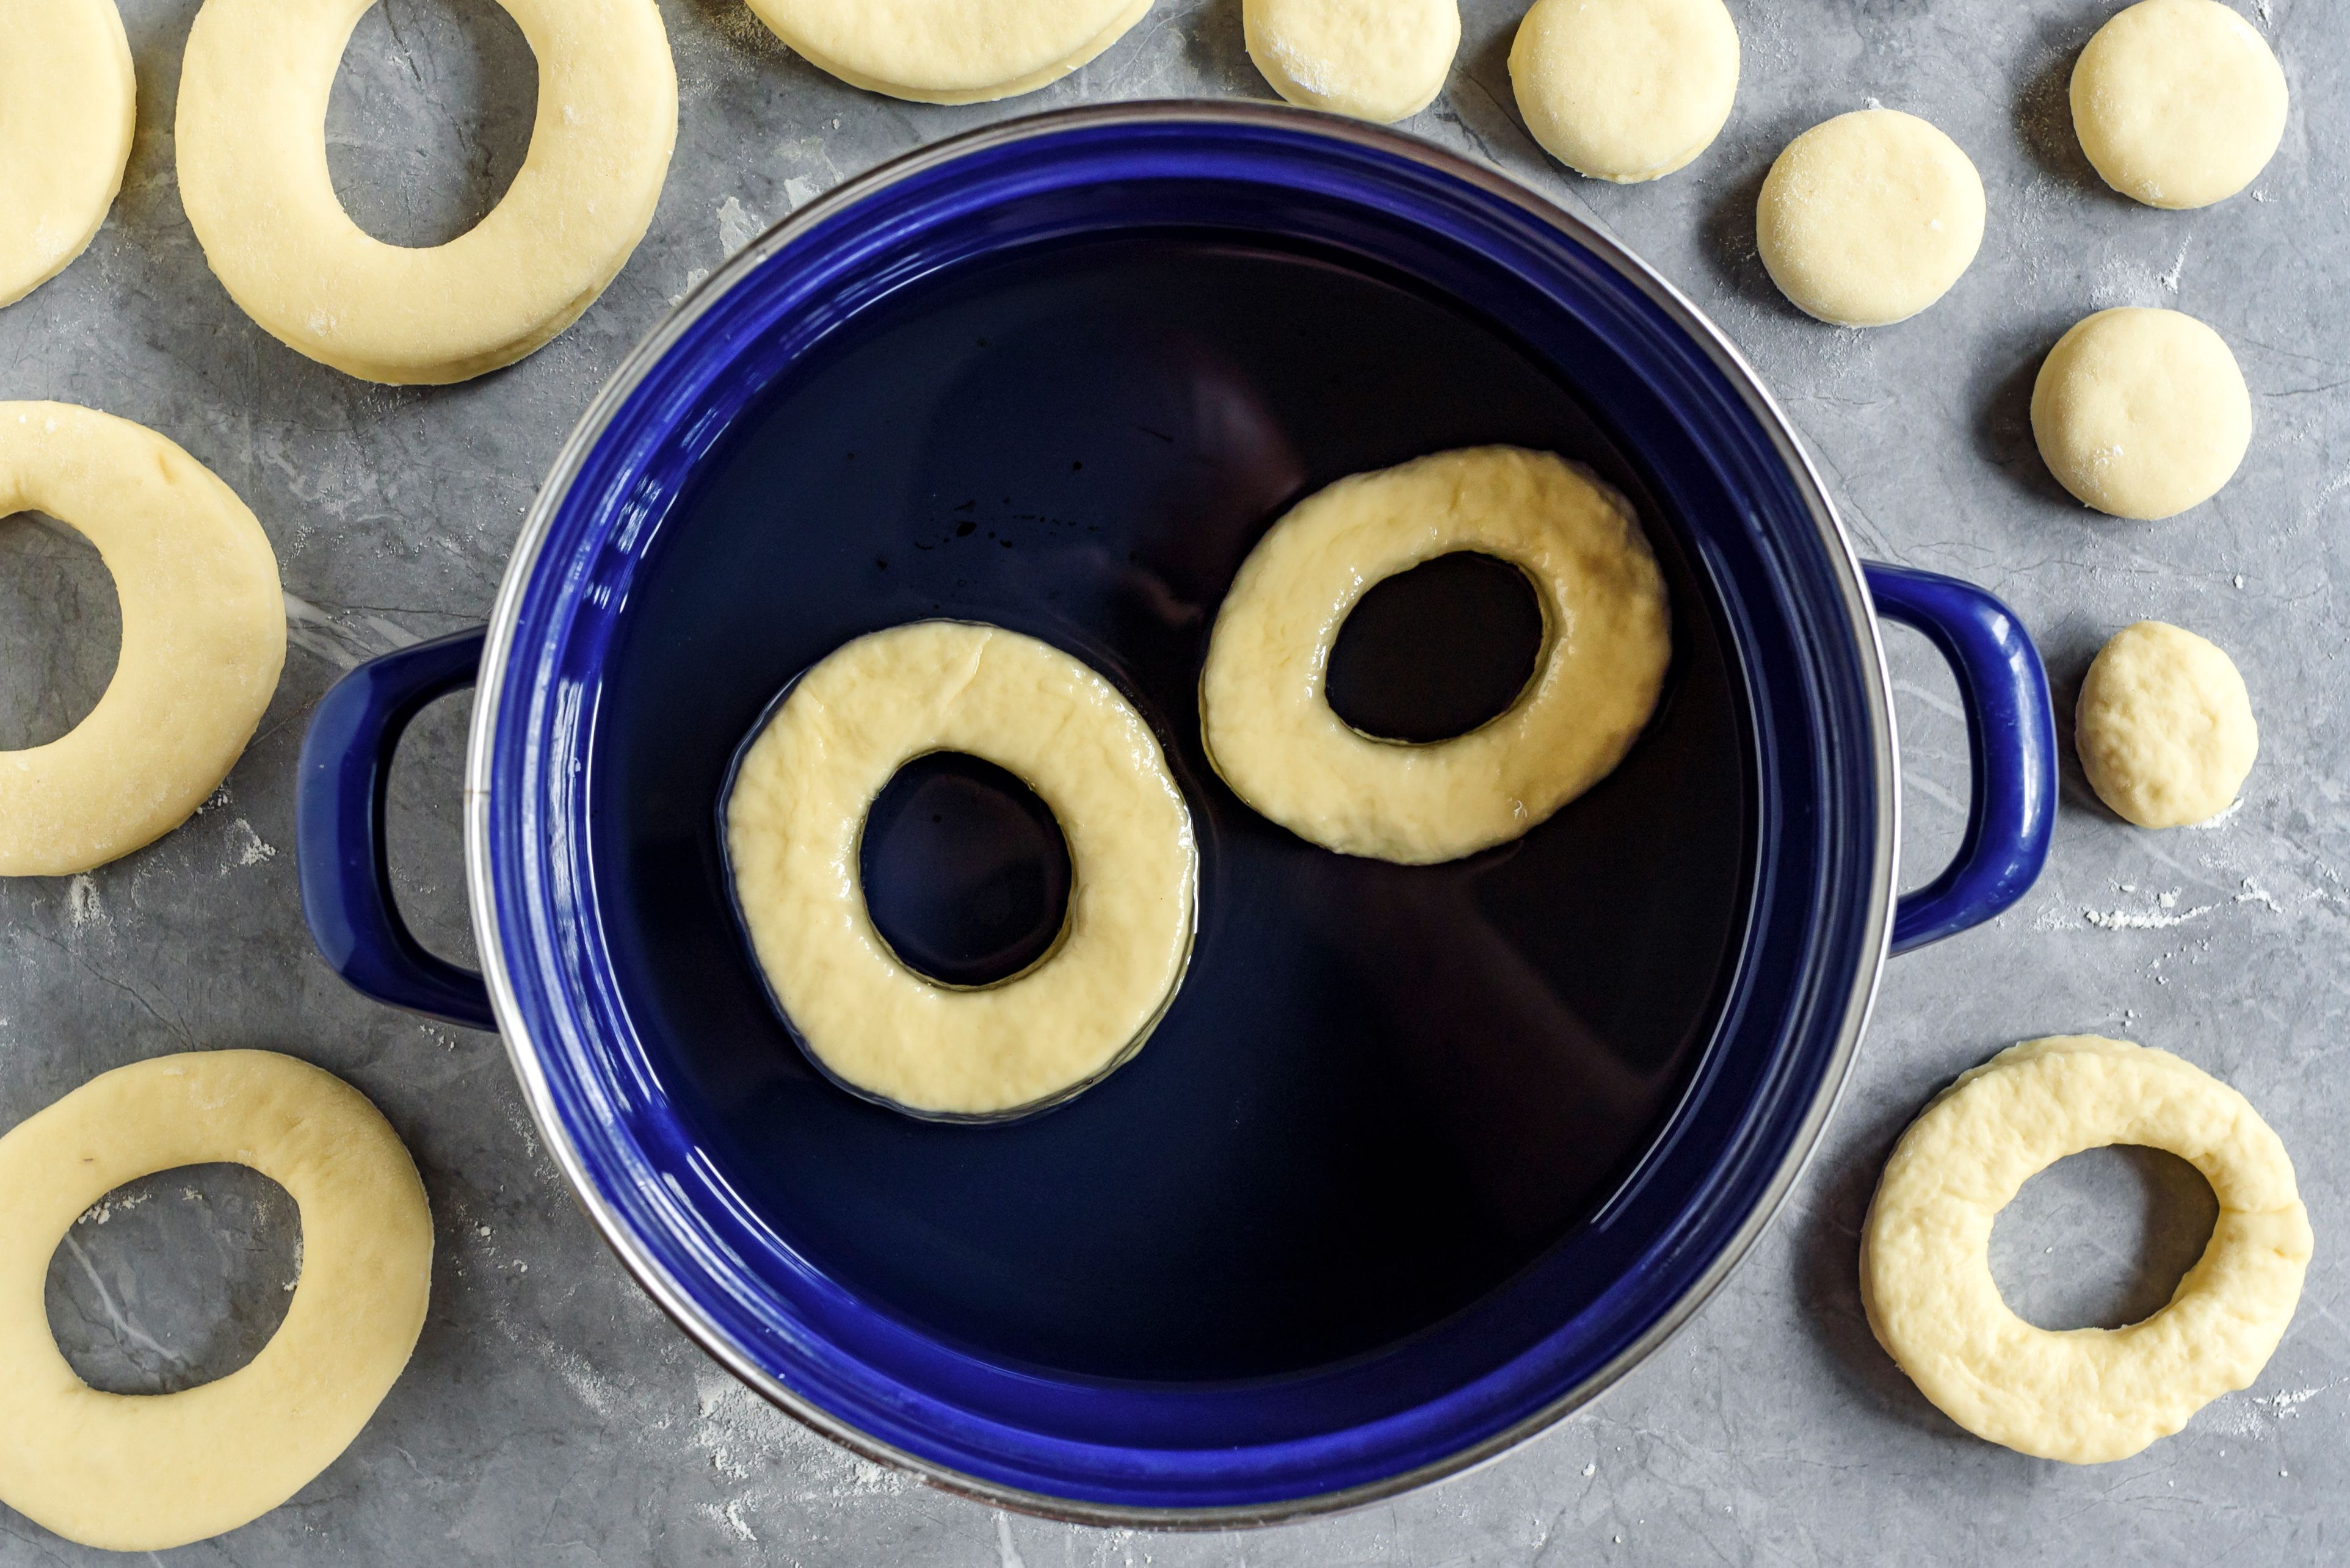 Doughnuts in cooking oil